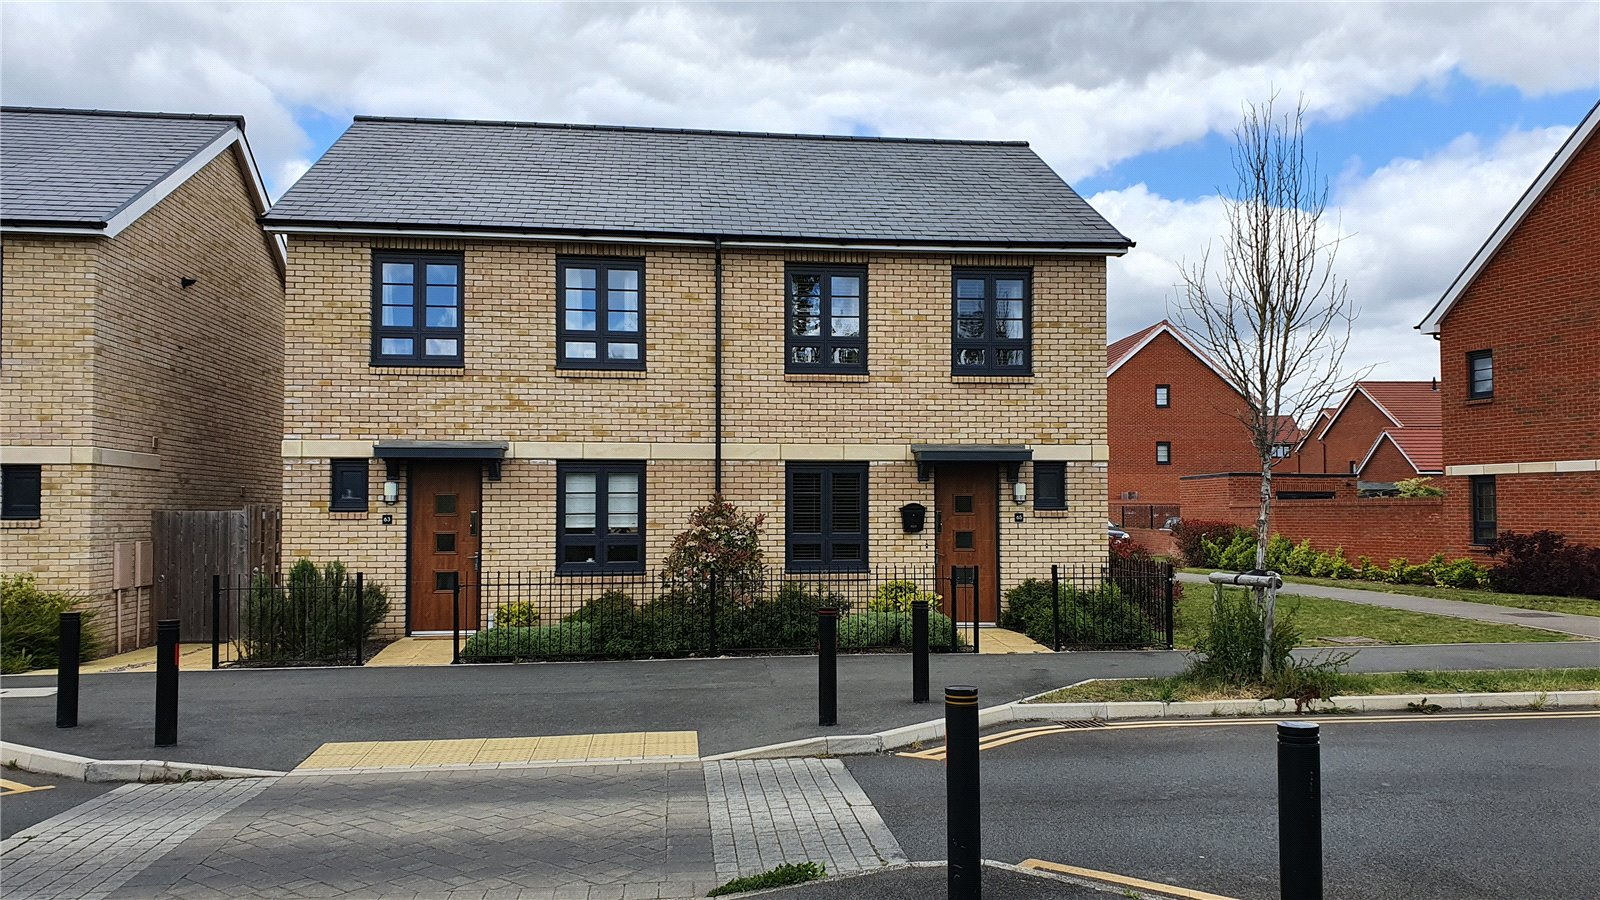 2 bed house for sale in St Neots, PE19 6GL - Property Image 1